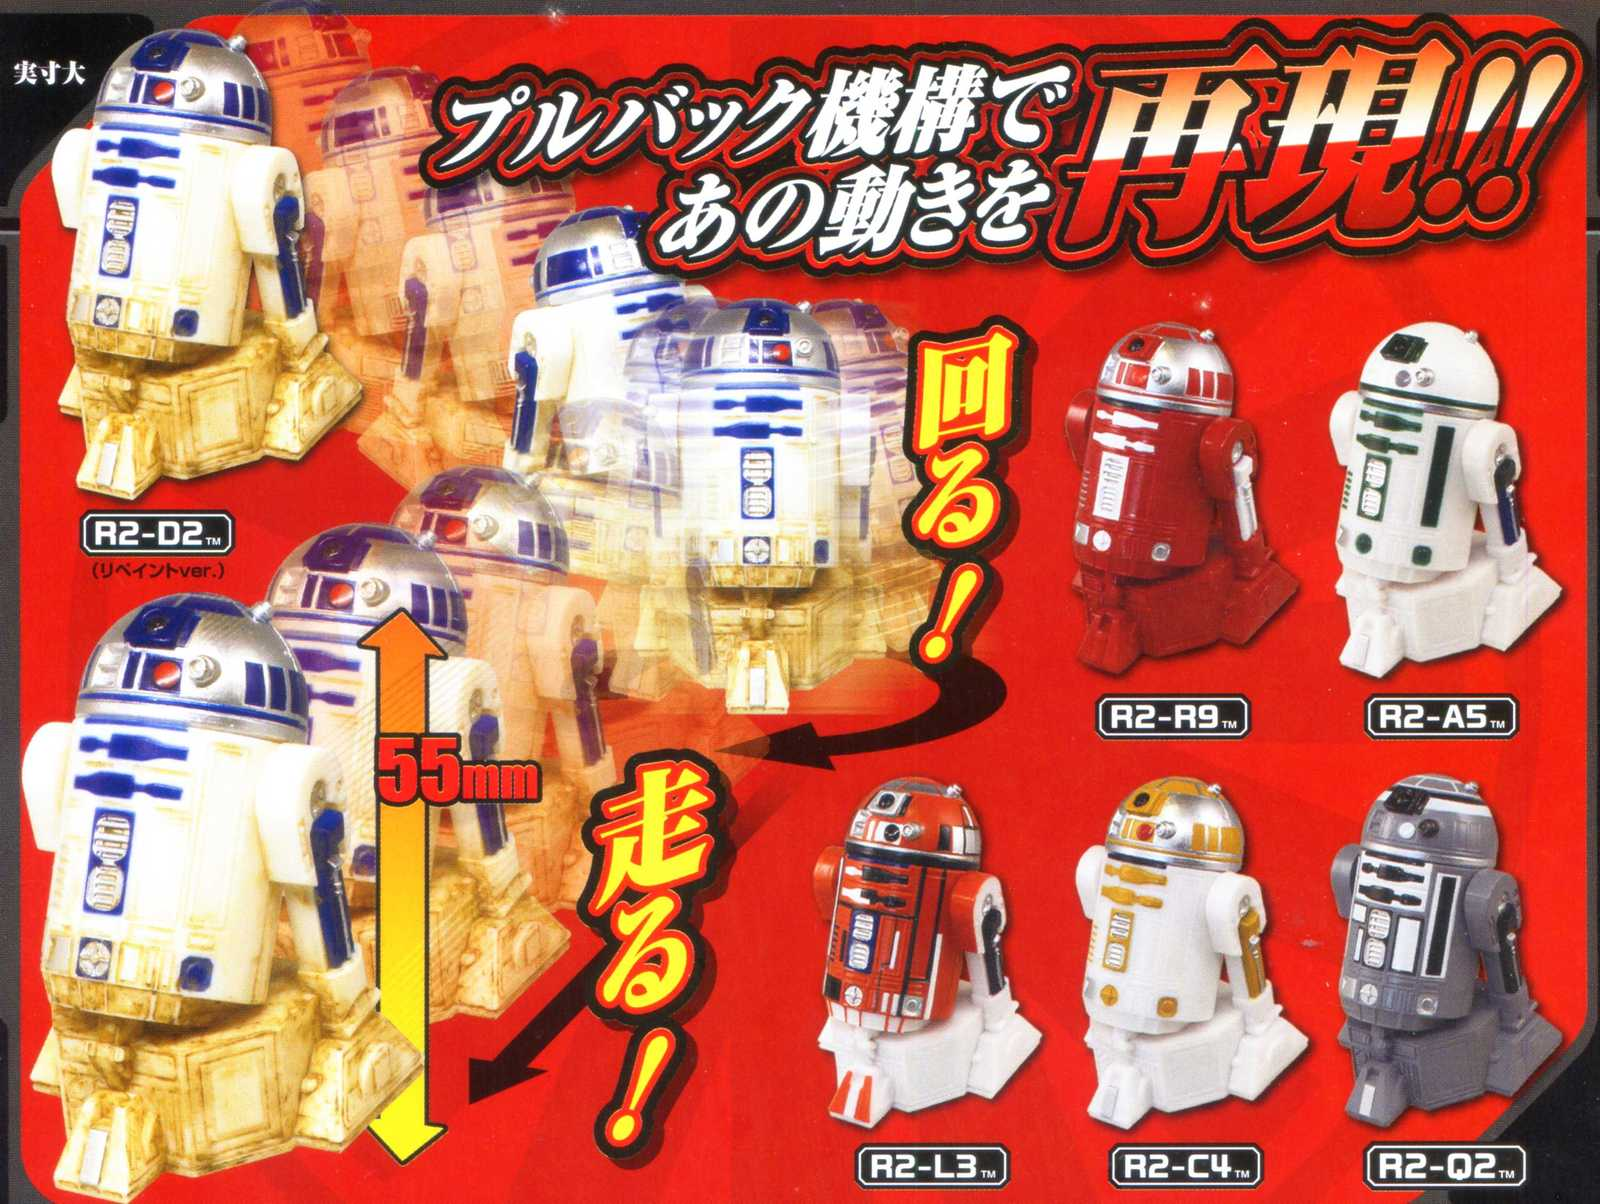 TAKARA TOMY STAR WARS Characters GACHA GALAXY PULLBACK DROID Phase 2 R2-D2 Dirty